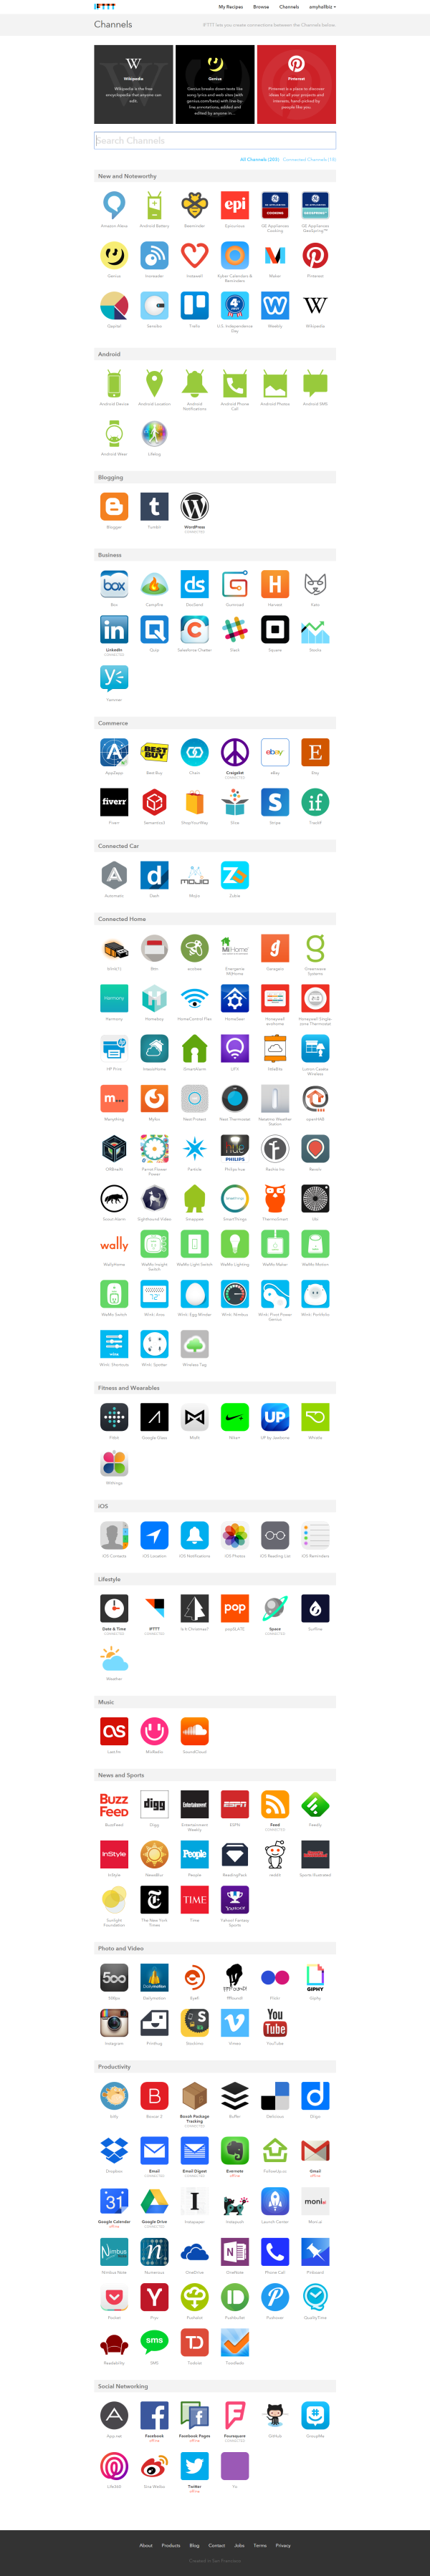 Time Saving Tools with IFTTT 1